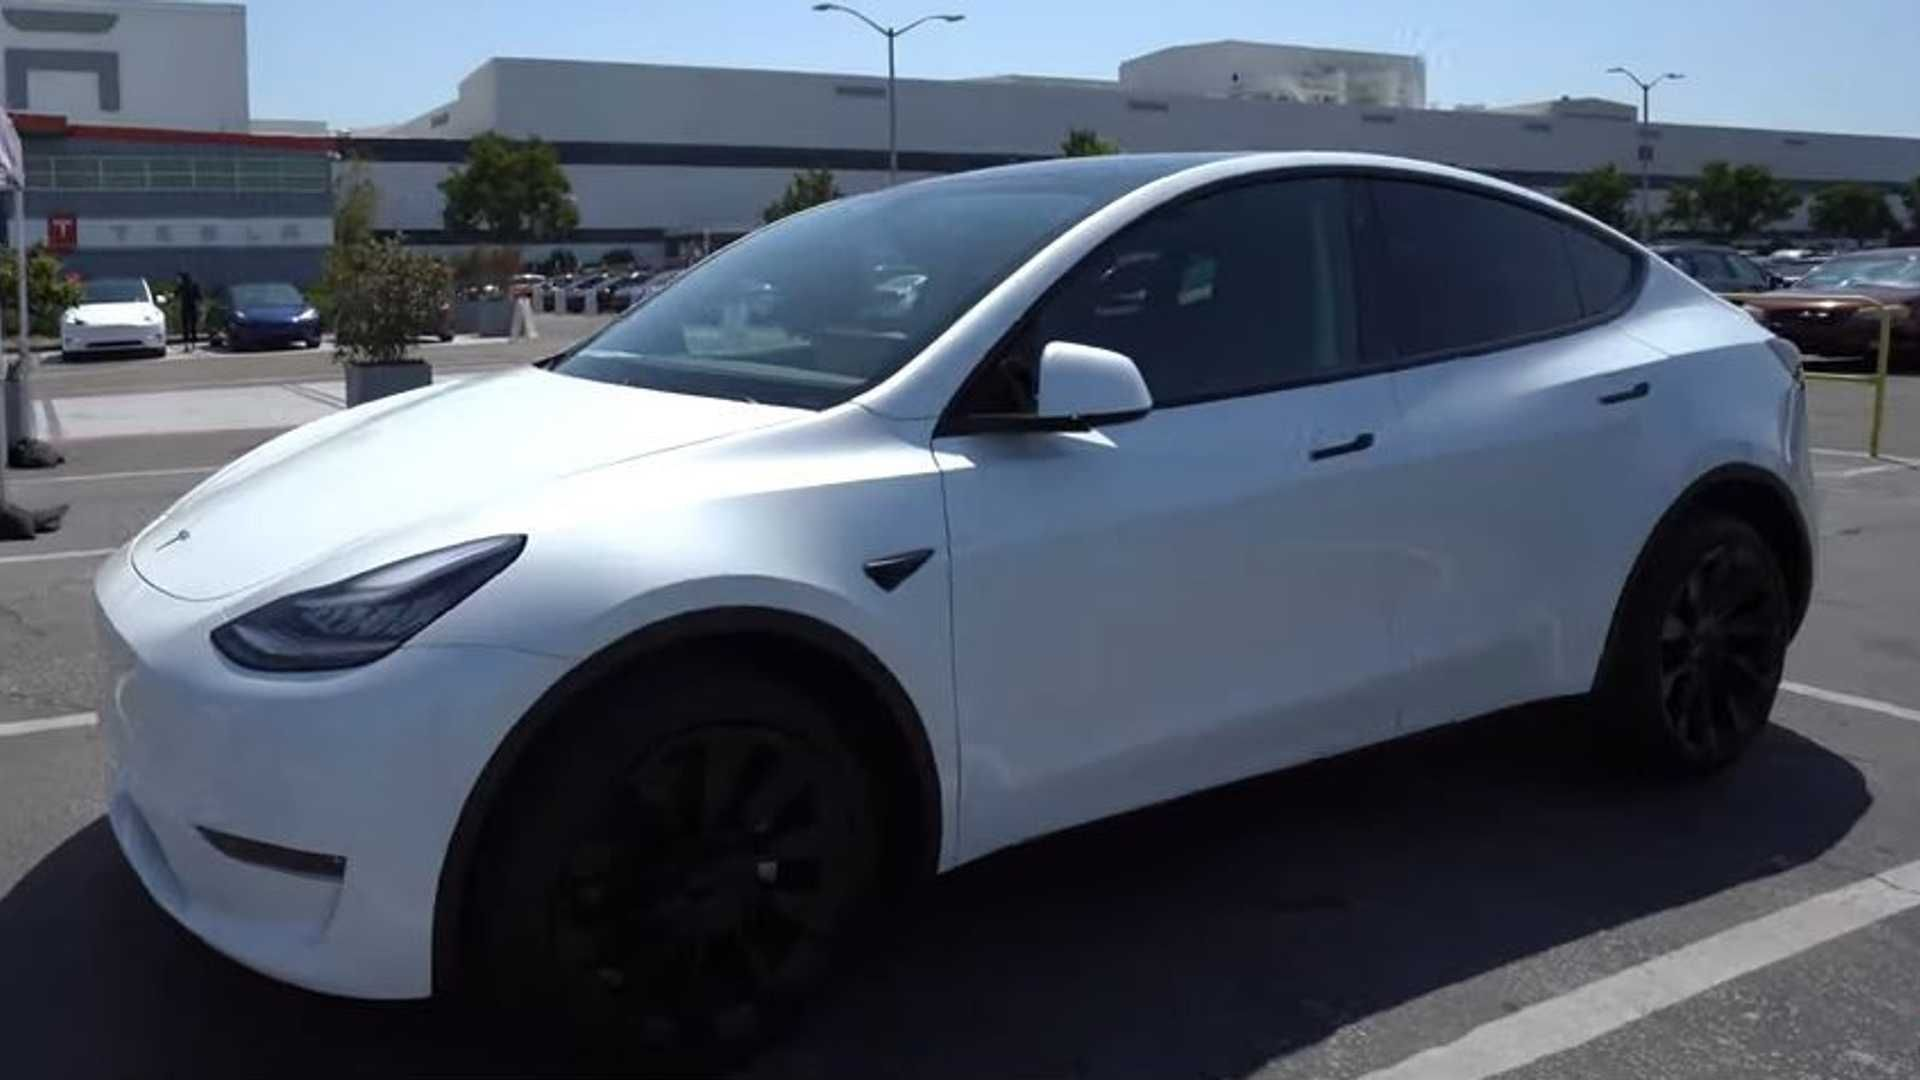 Tesla Seems To Be Plagued With Quality And Fit And Finish Issues However Many Model Ys Seem Just Fine Maybe Consistency Is The Tesla Tesla Model Dream Cars